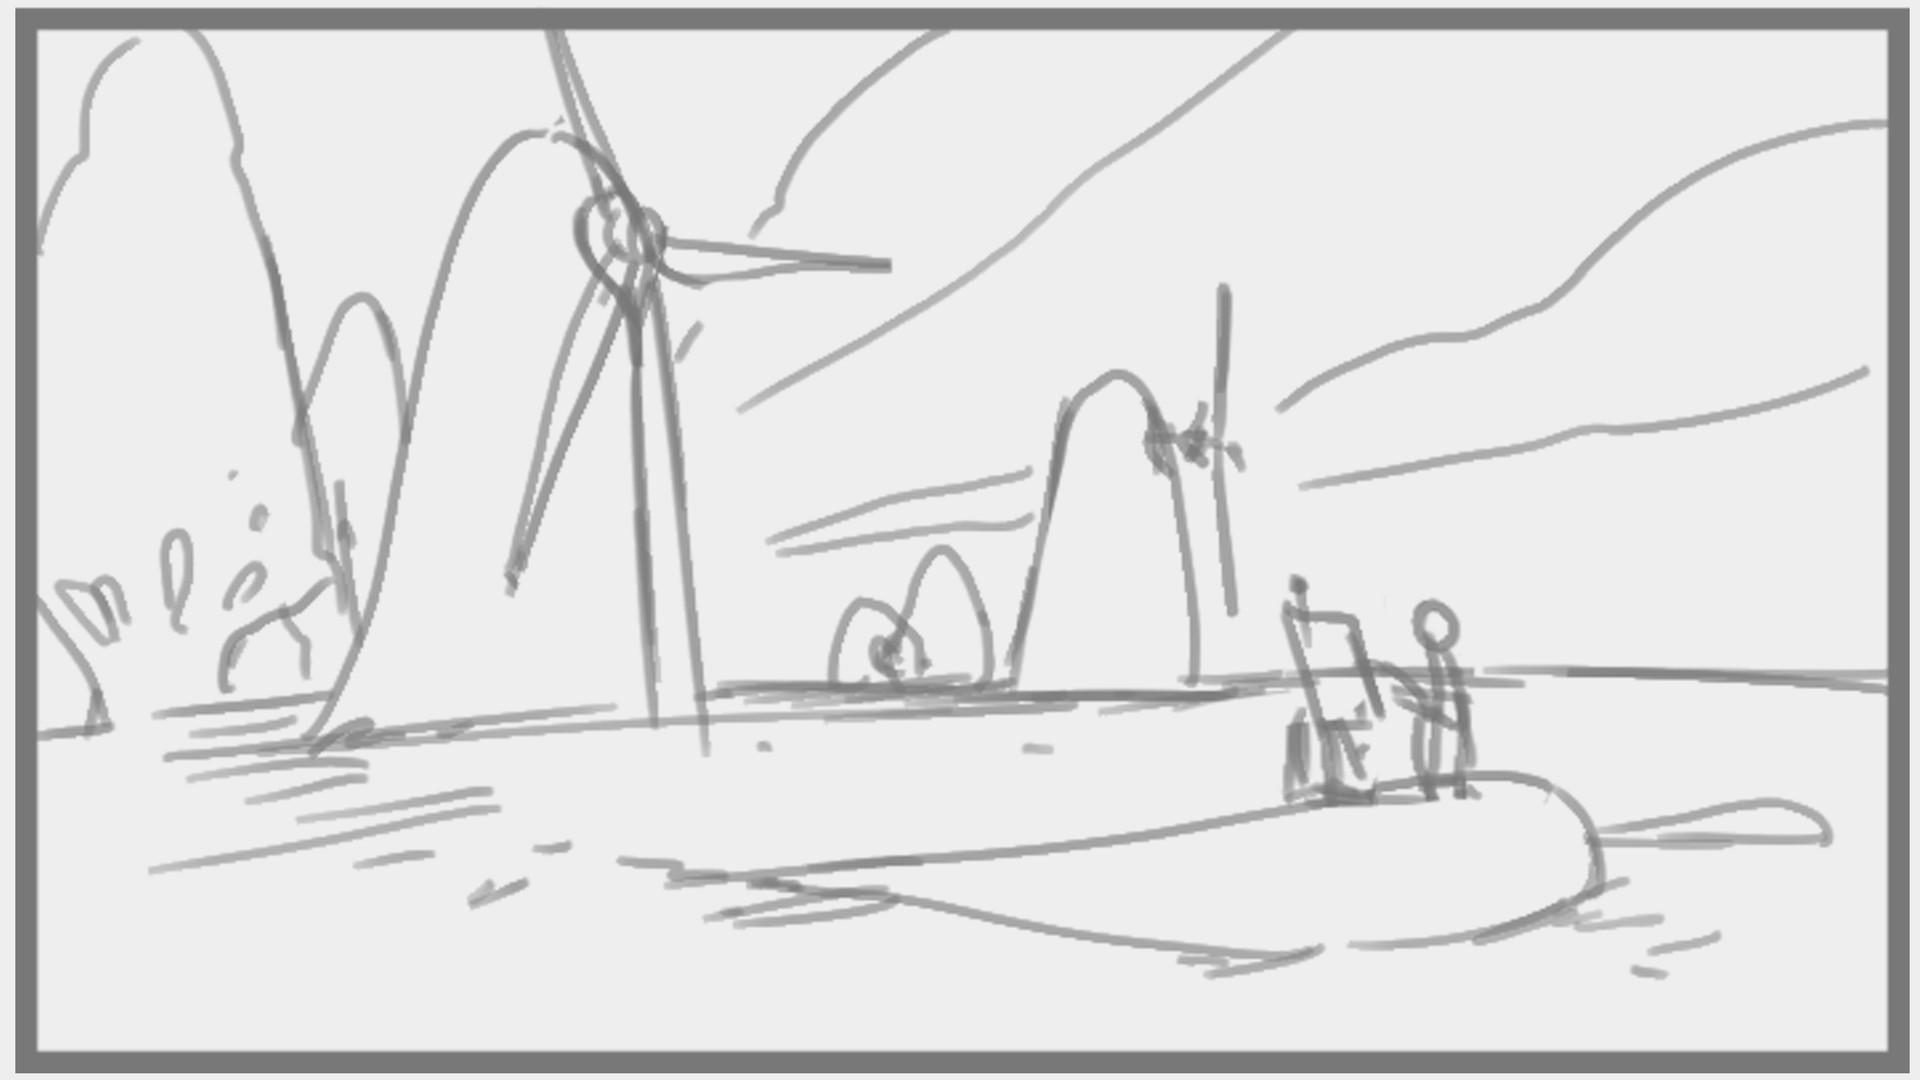 Samuel herb painting windmills sketch